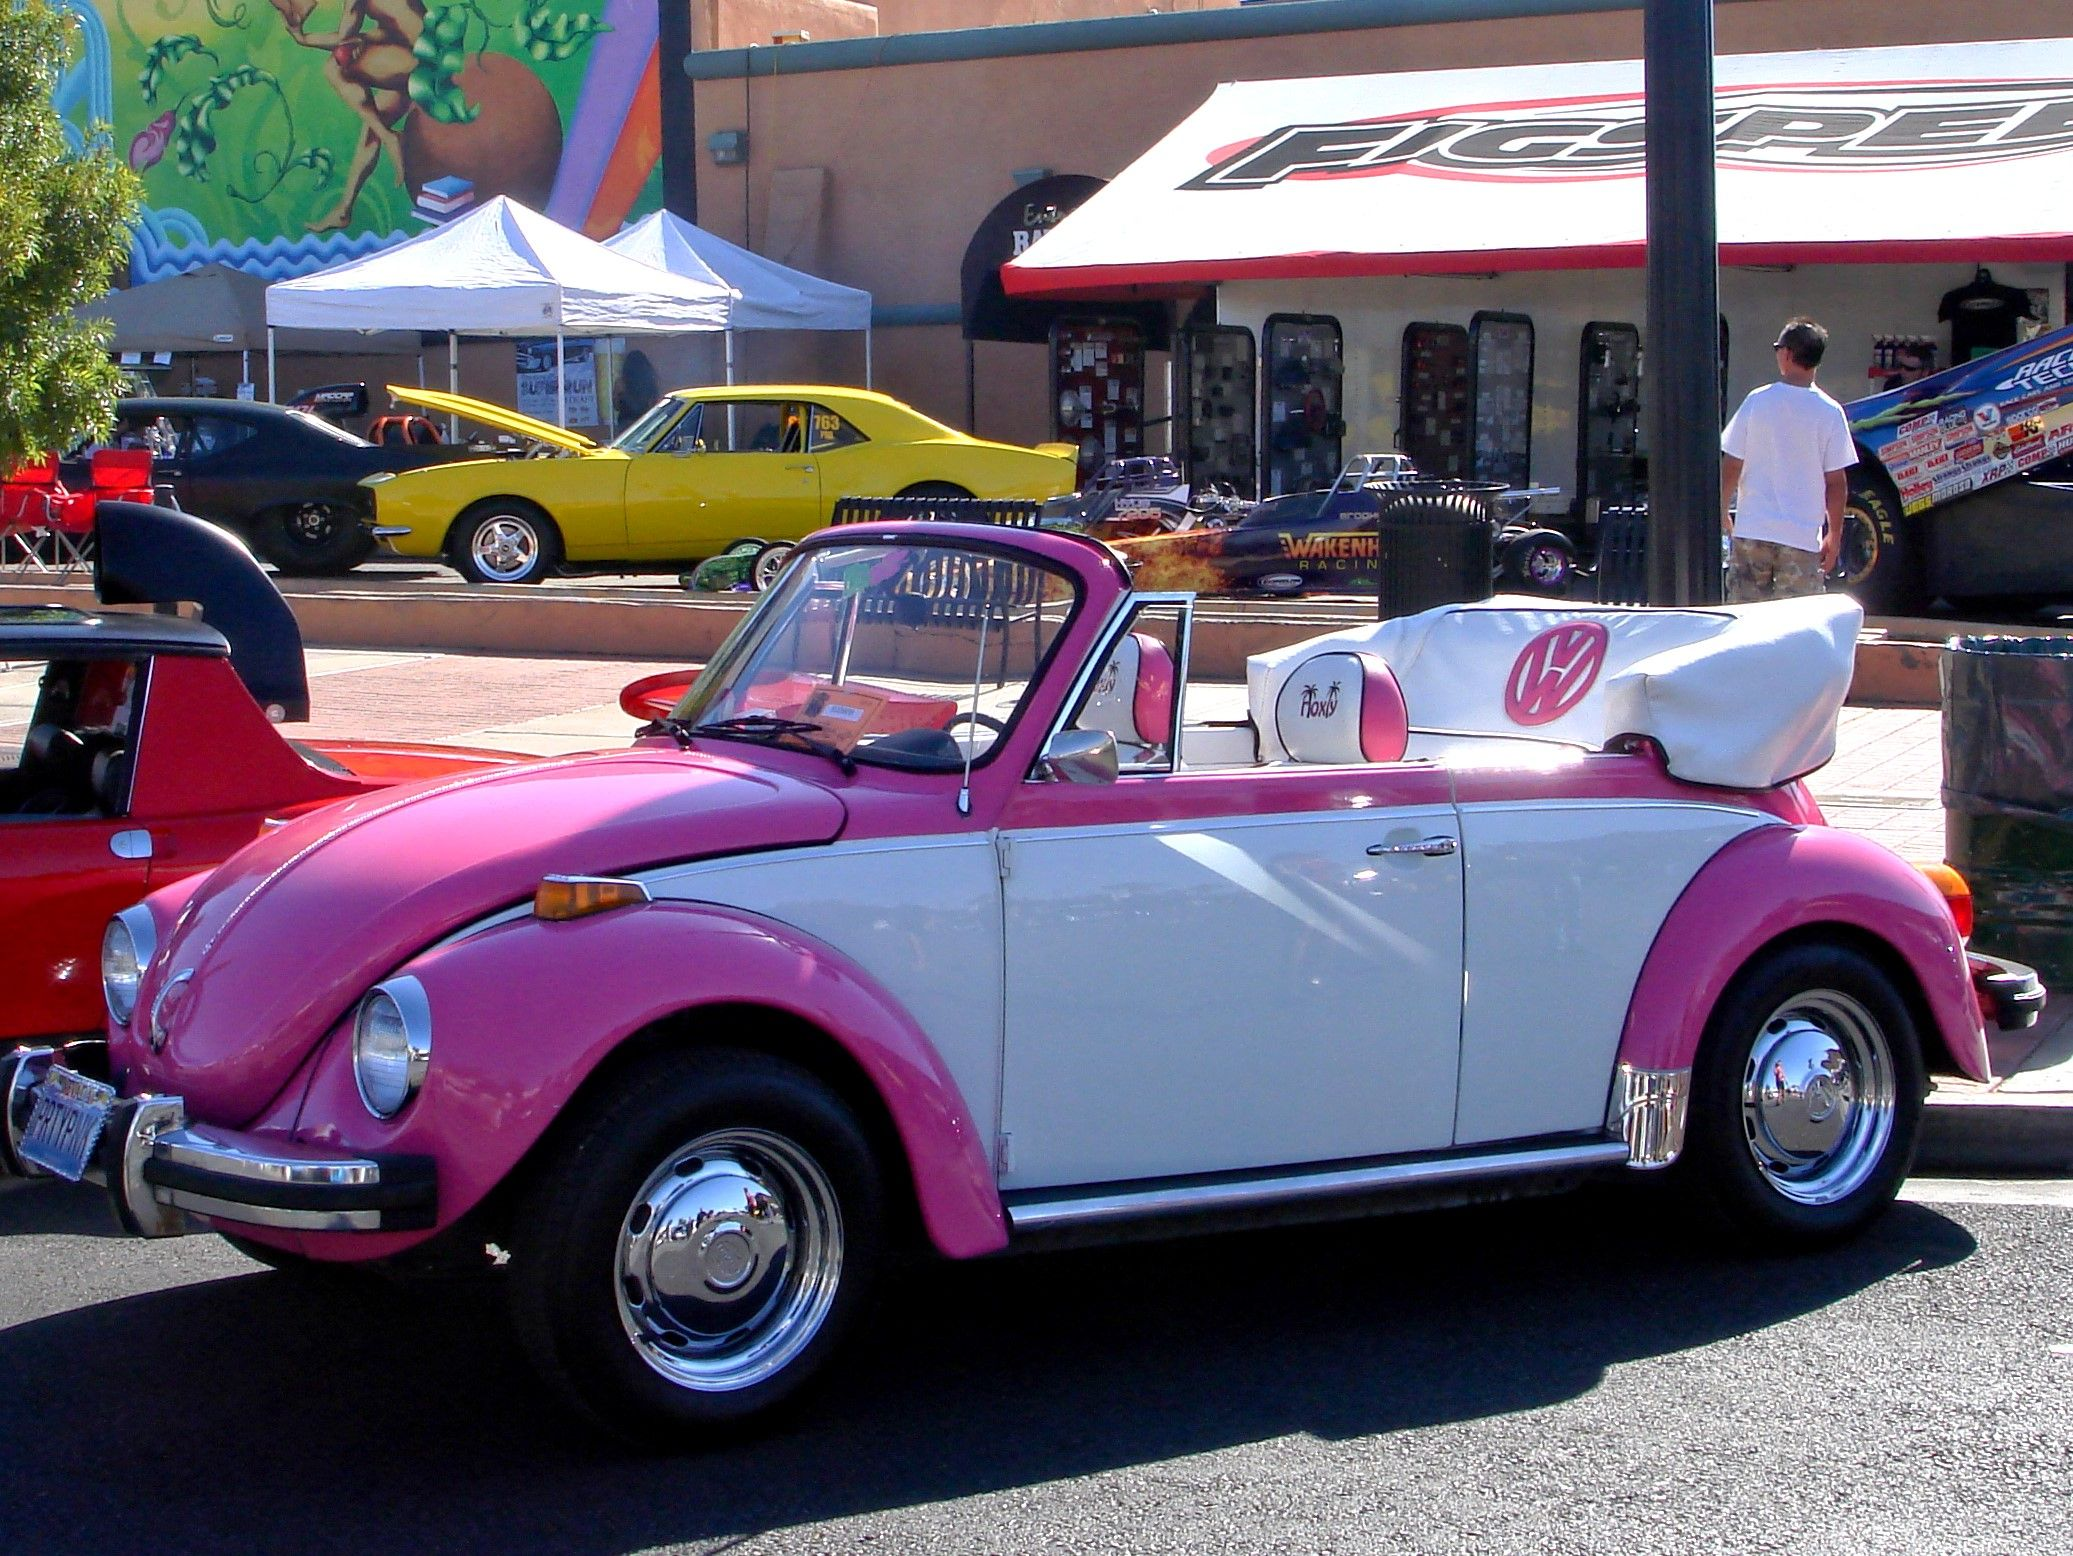 Me Want One Like This Beetle Convertible Fancy Cars Volkswagen